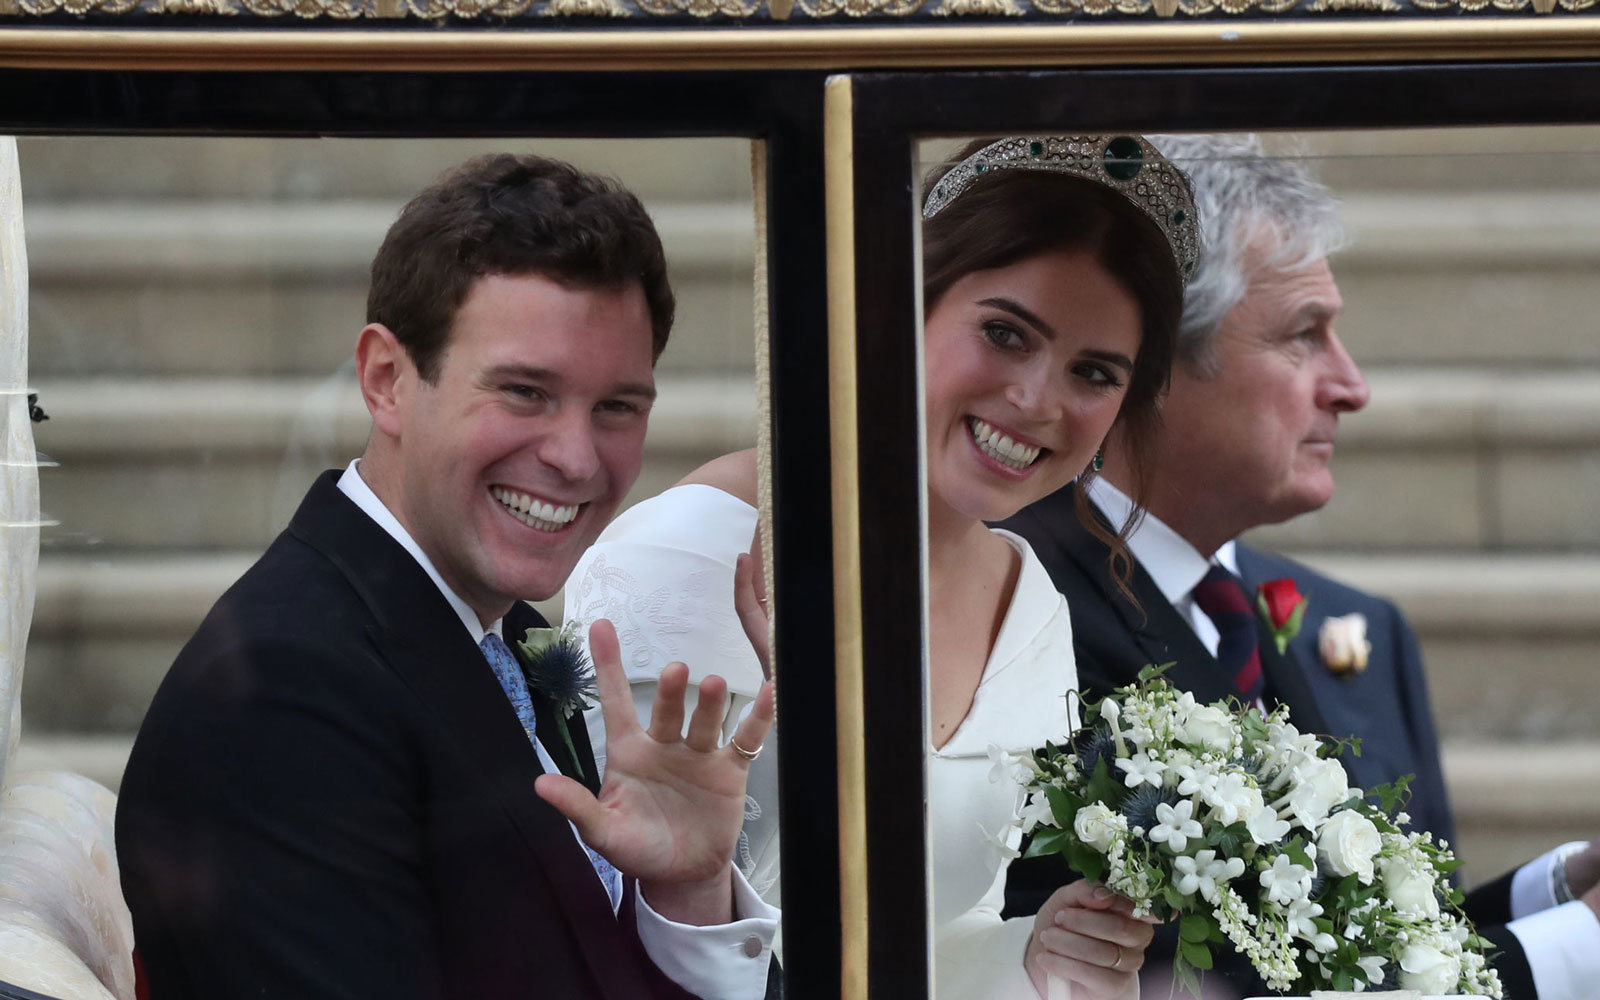 Princess Eugenie and James